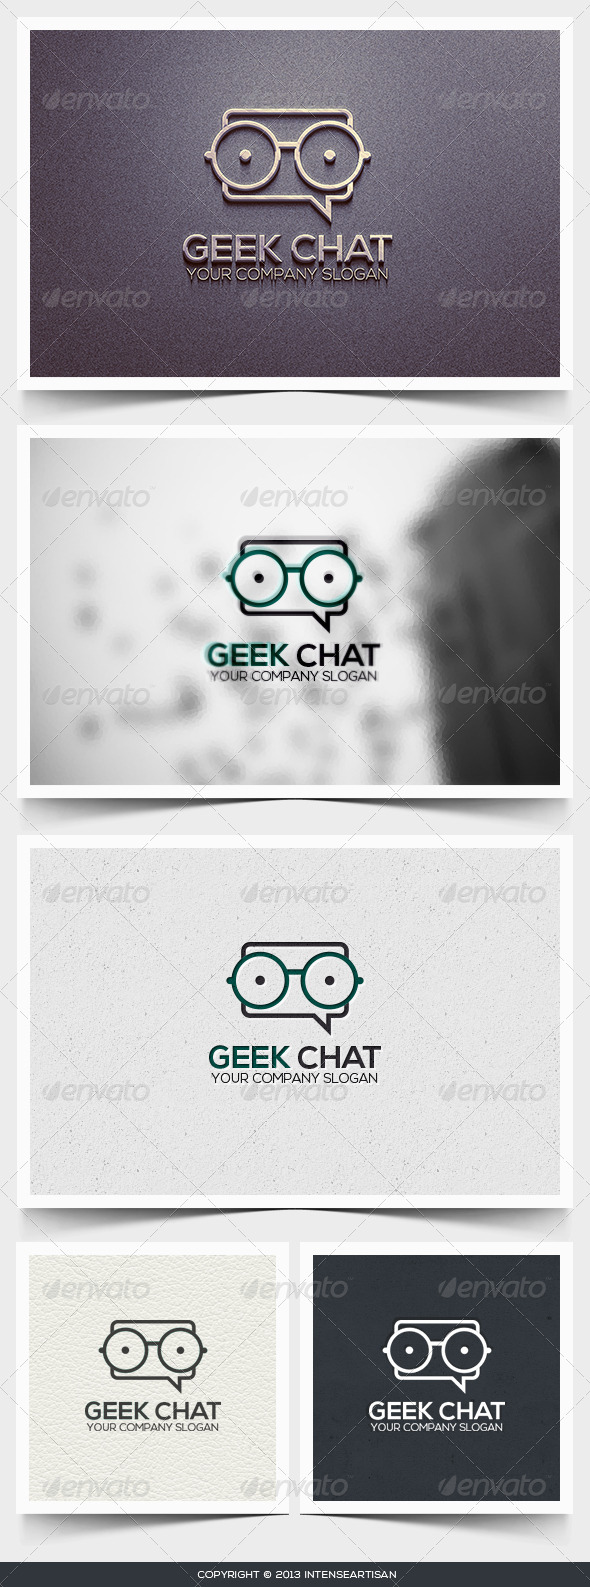 Geek Chat Logo Template - Objects Logo Templates